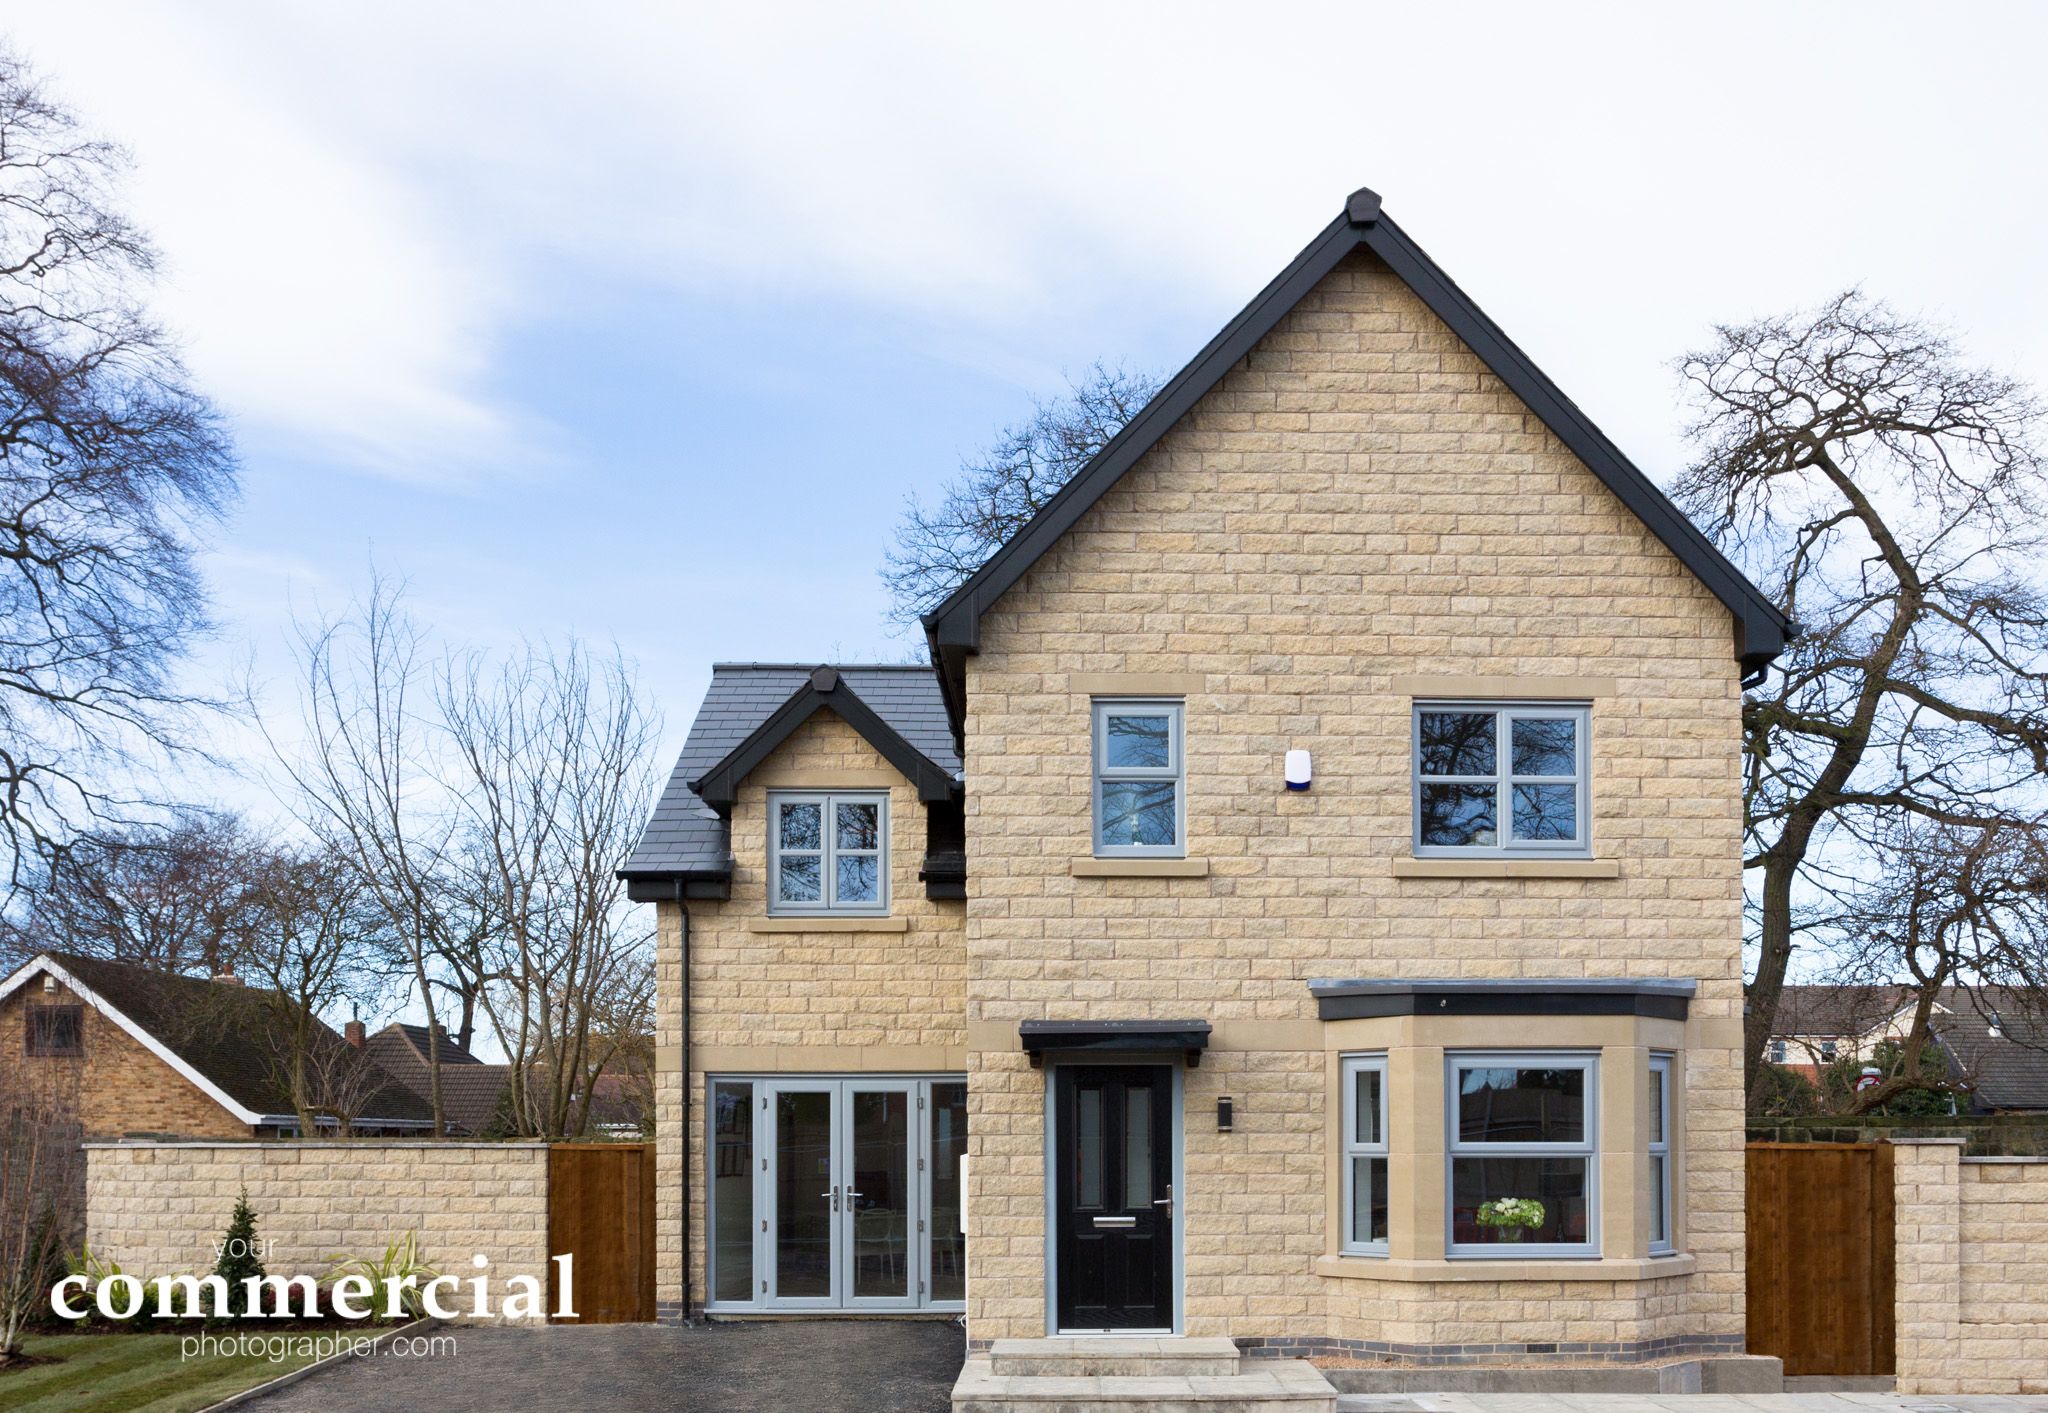 Exterior photograph in a showhome at a new development in Yorkshire